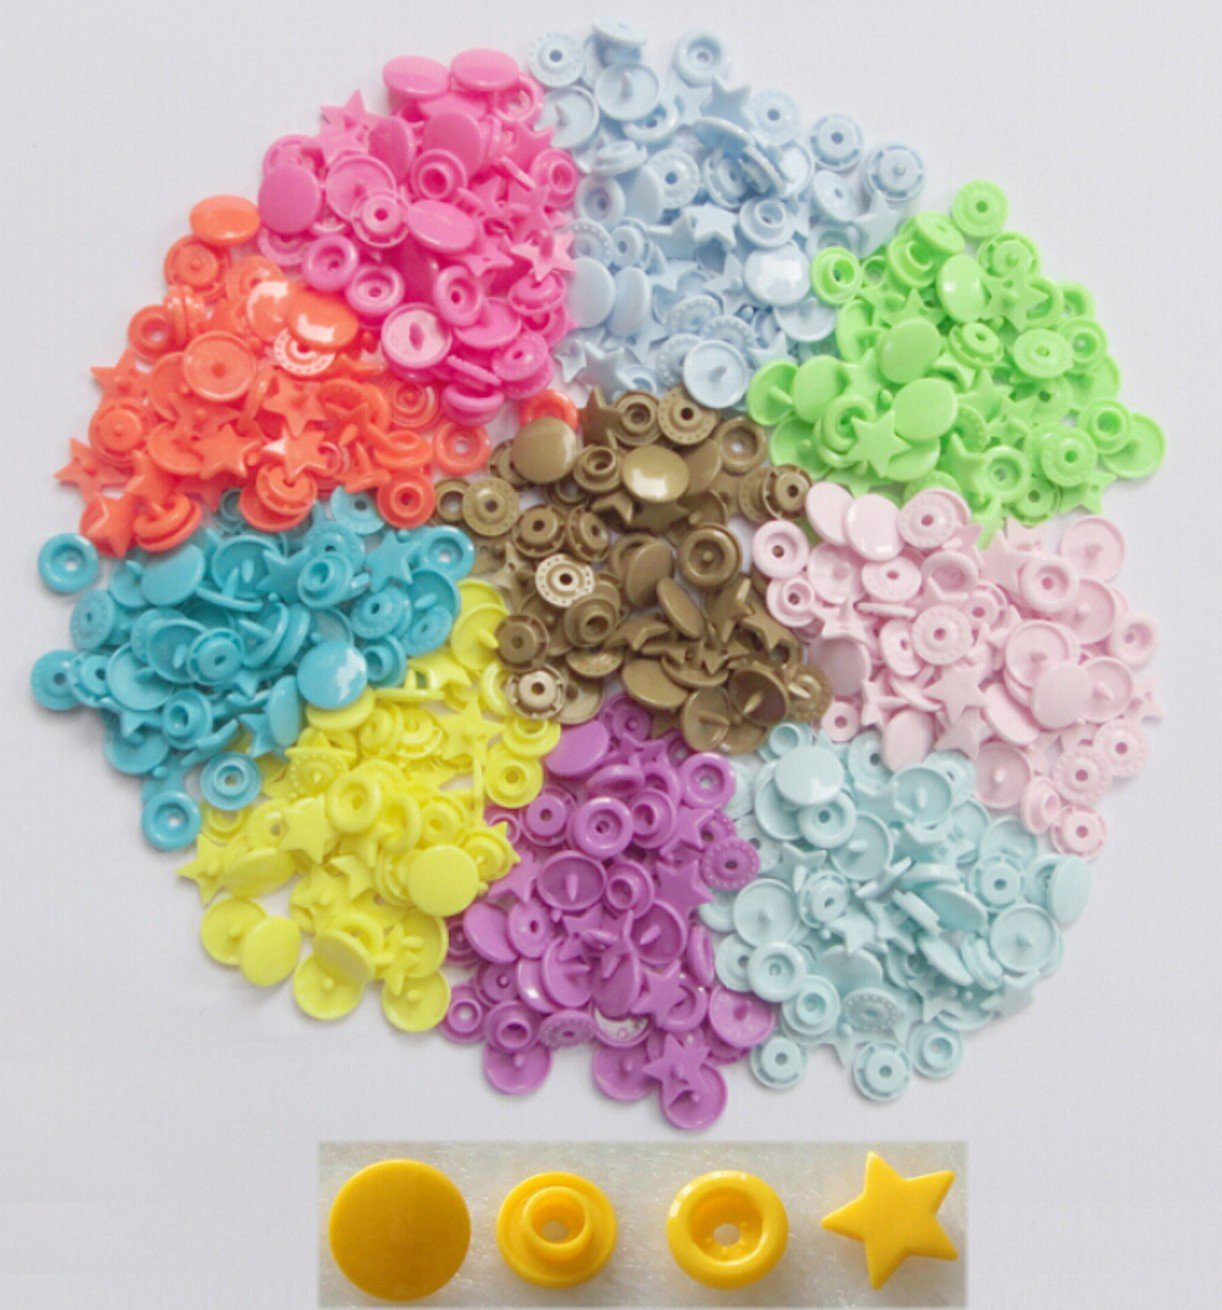 WellieSTR { 150 sets 10 Colors mixed Kit } KAM Star Shaped Plastic Snap Button & Tool Fastener Buttons For Baby Diaper Ltd